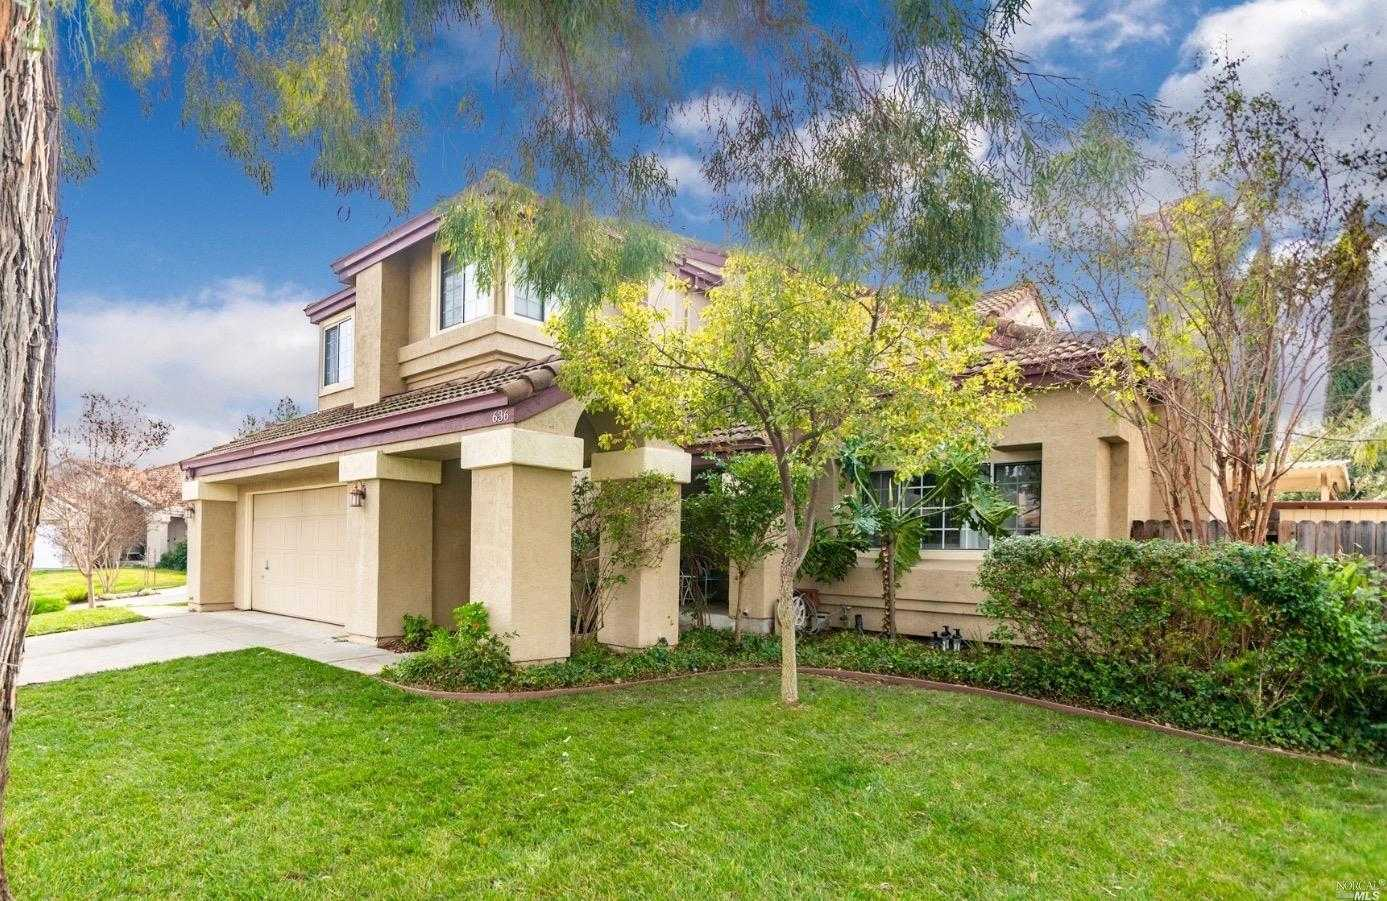 $615,000 - 5Br/3Ba -  for Sale in Vacaville